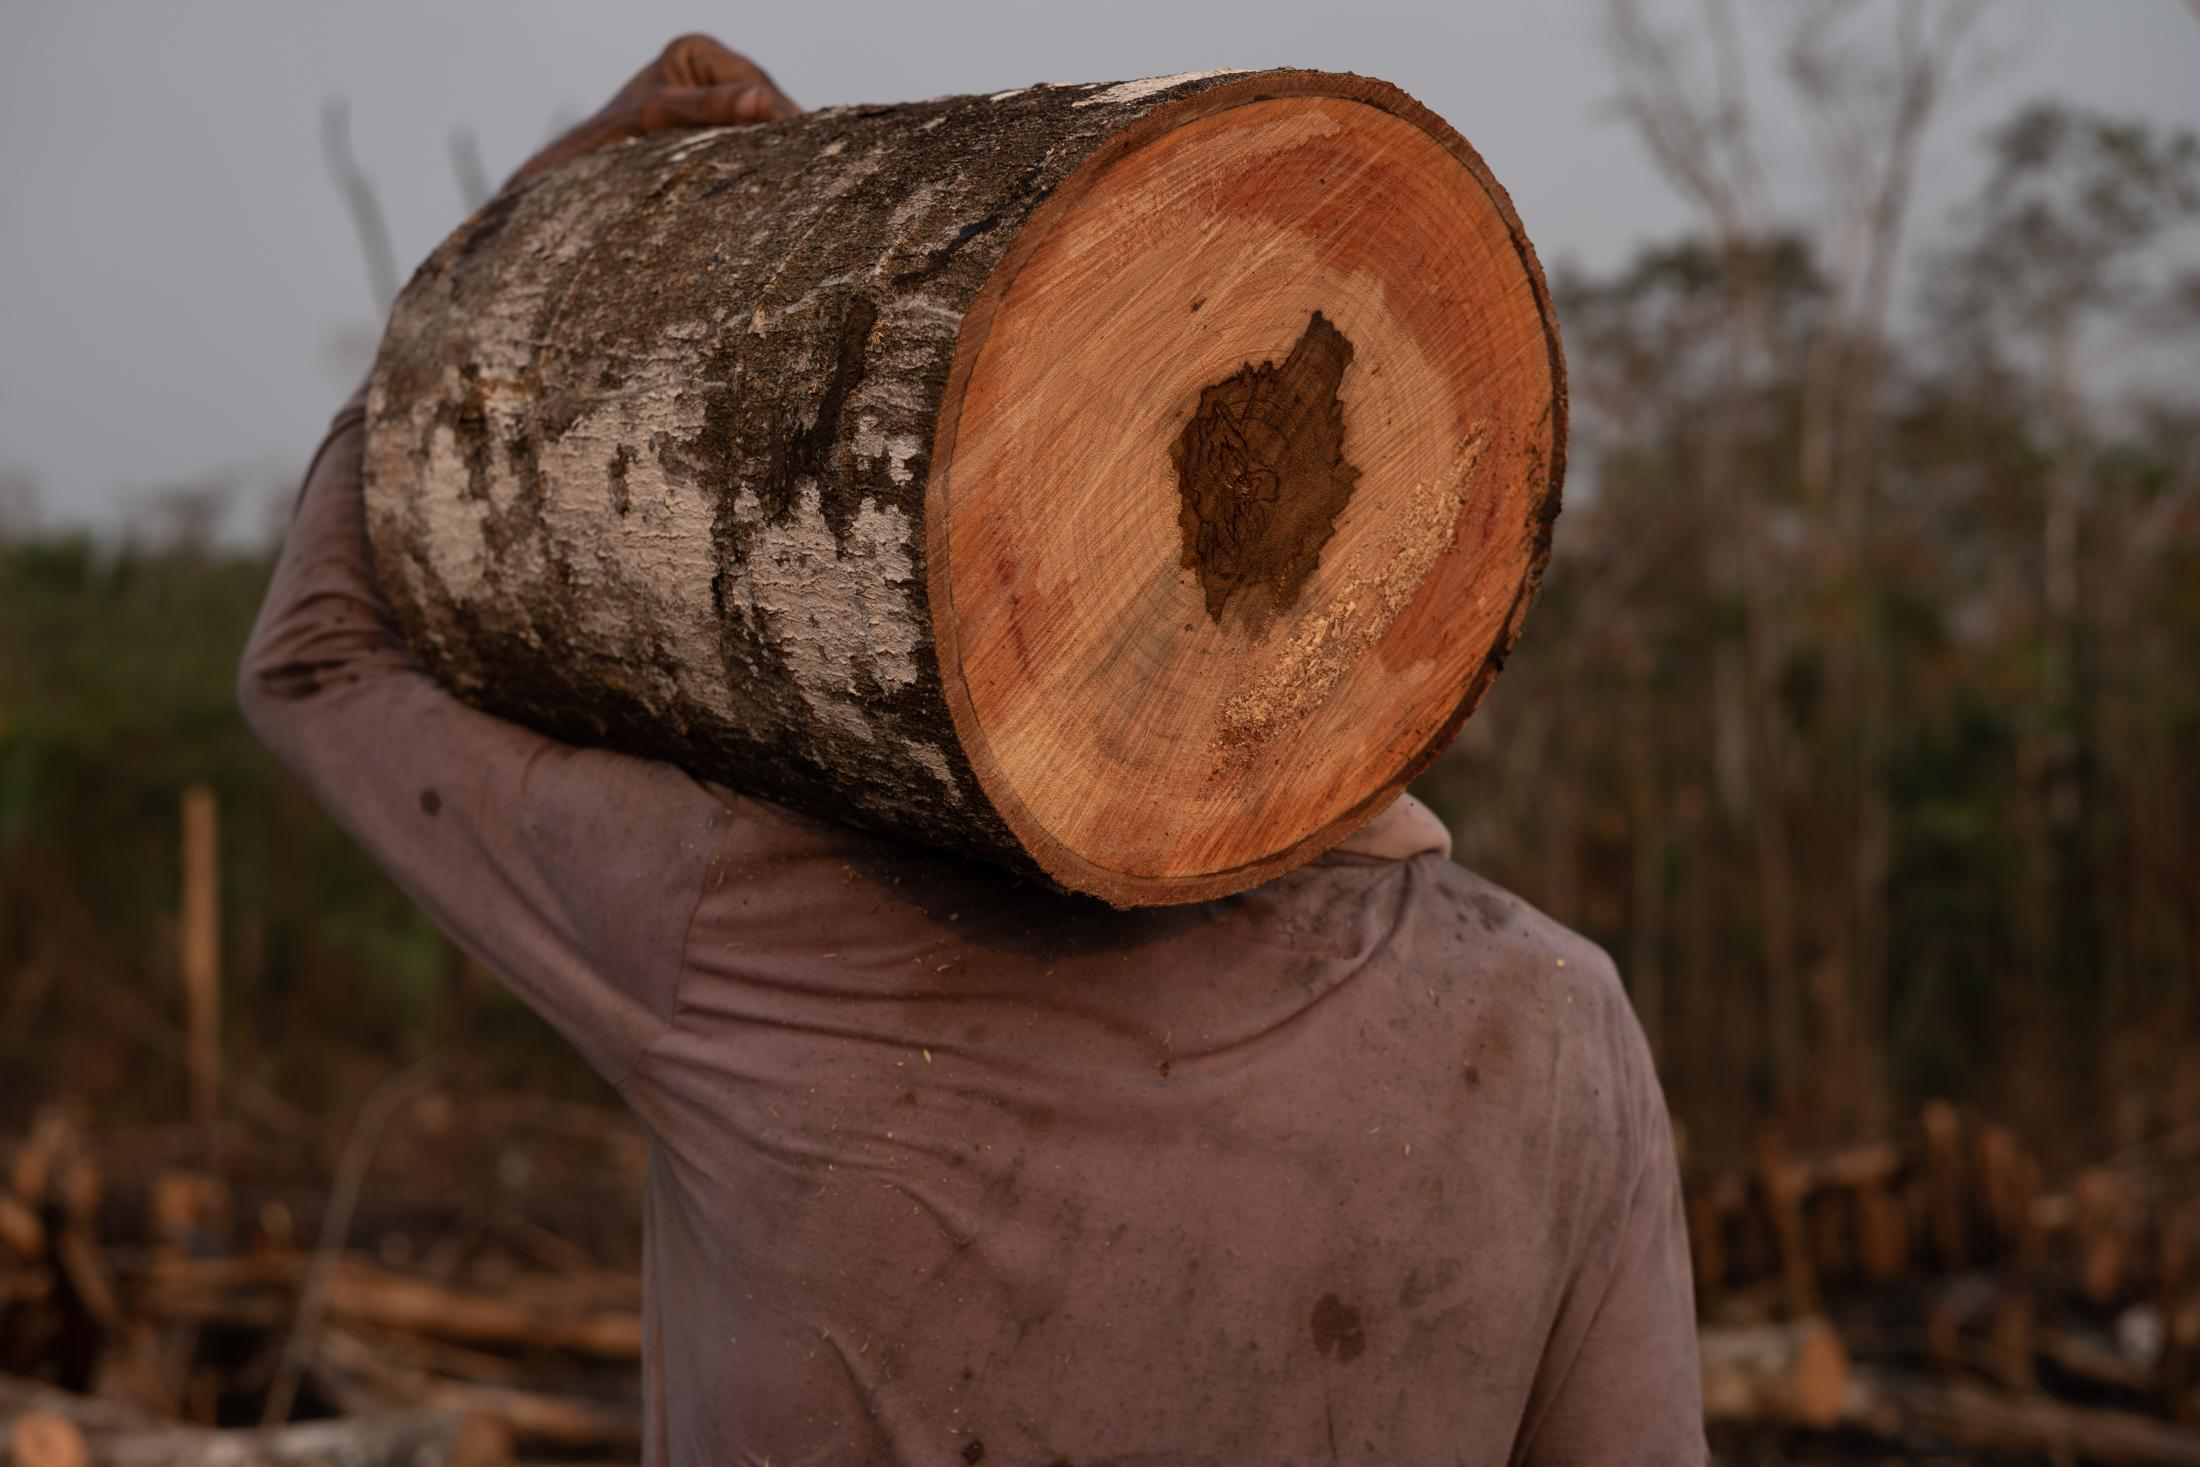 After the fires, people take advantage of the harvesting of the firewood near their homes in Bujari, Acre.